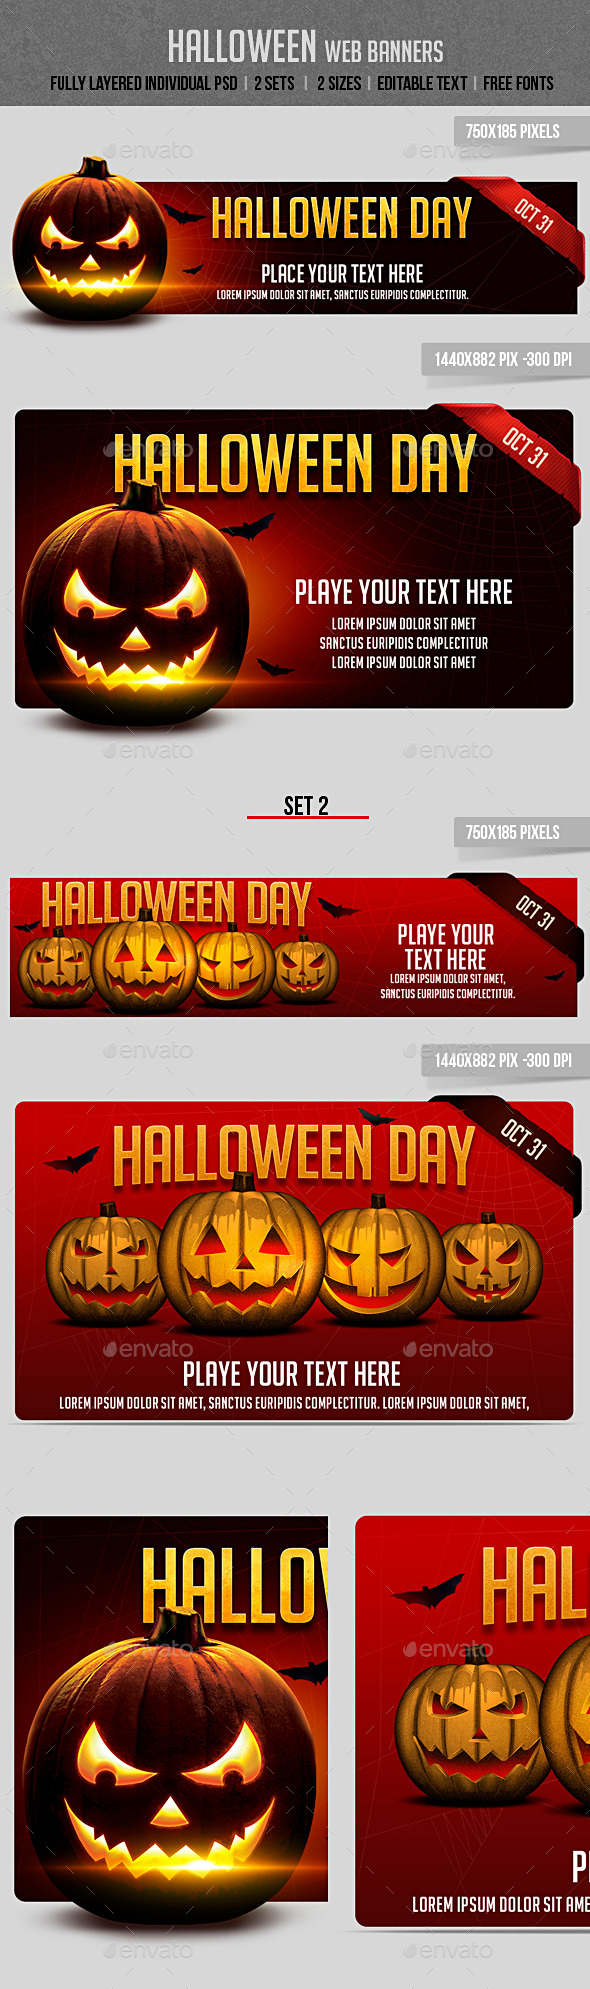 GraphicRiver Halloween Web Banners 8868348